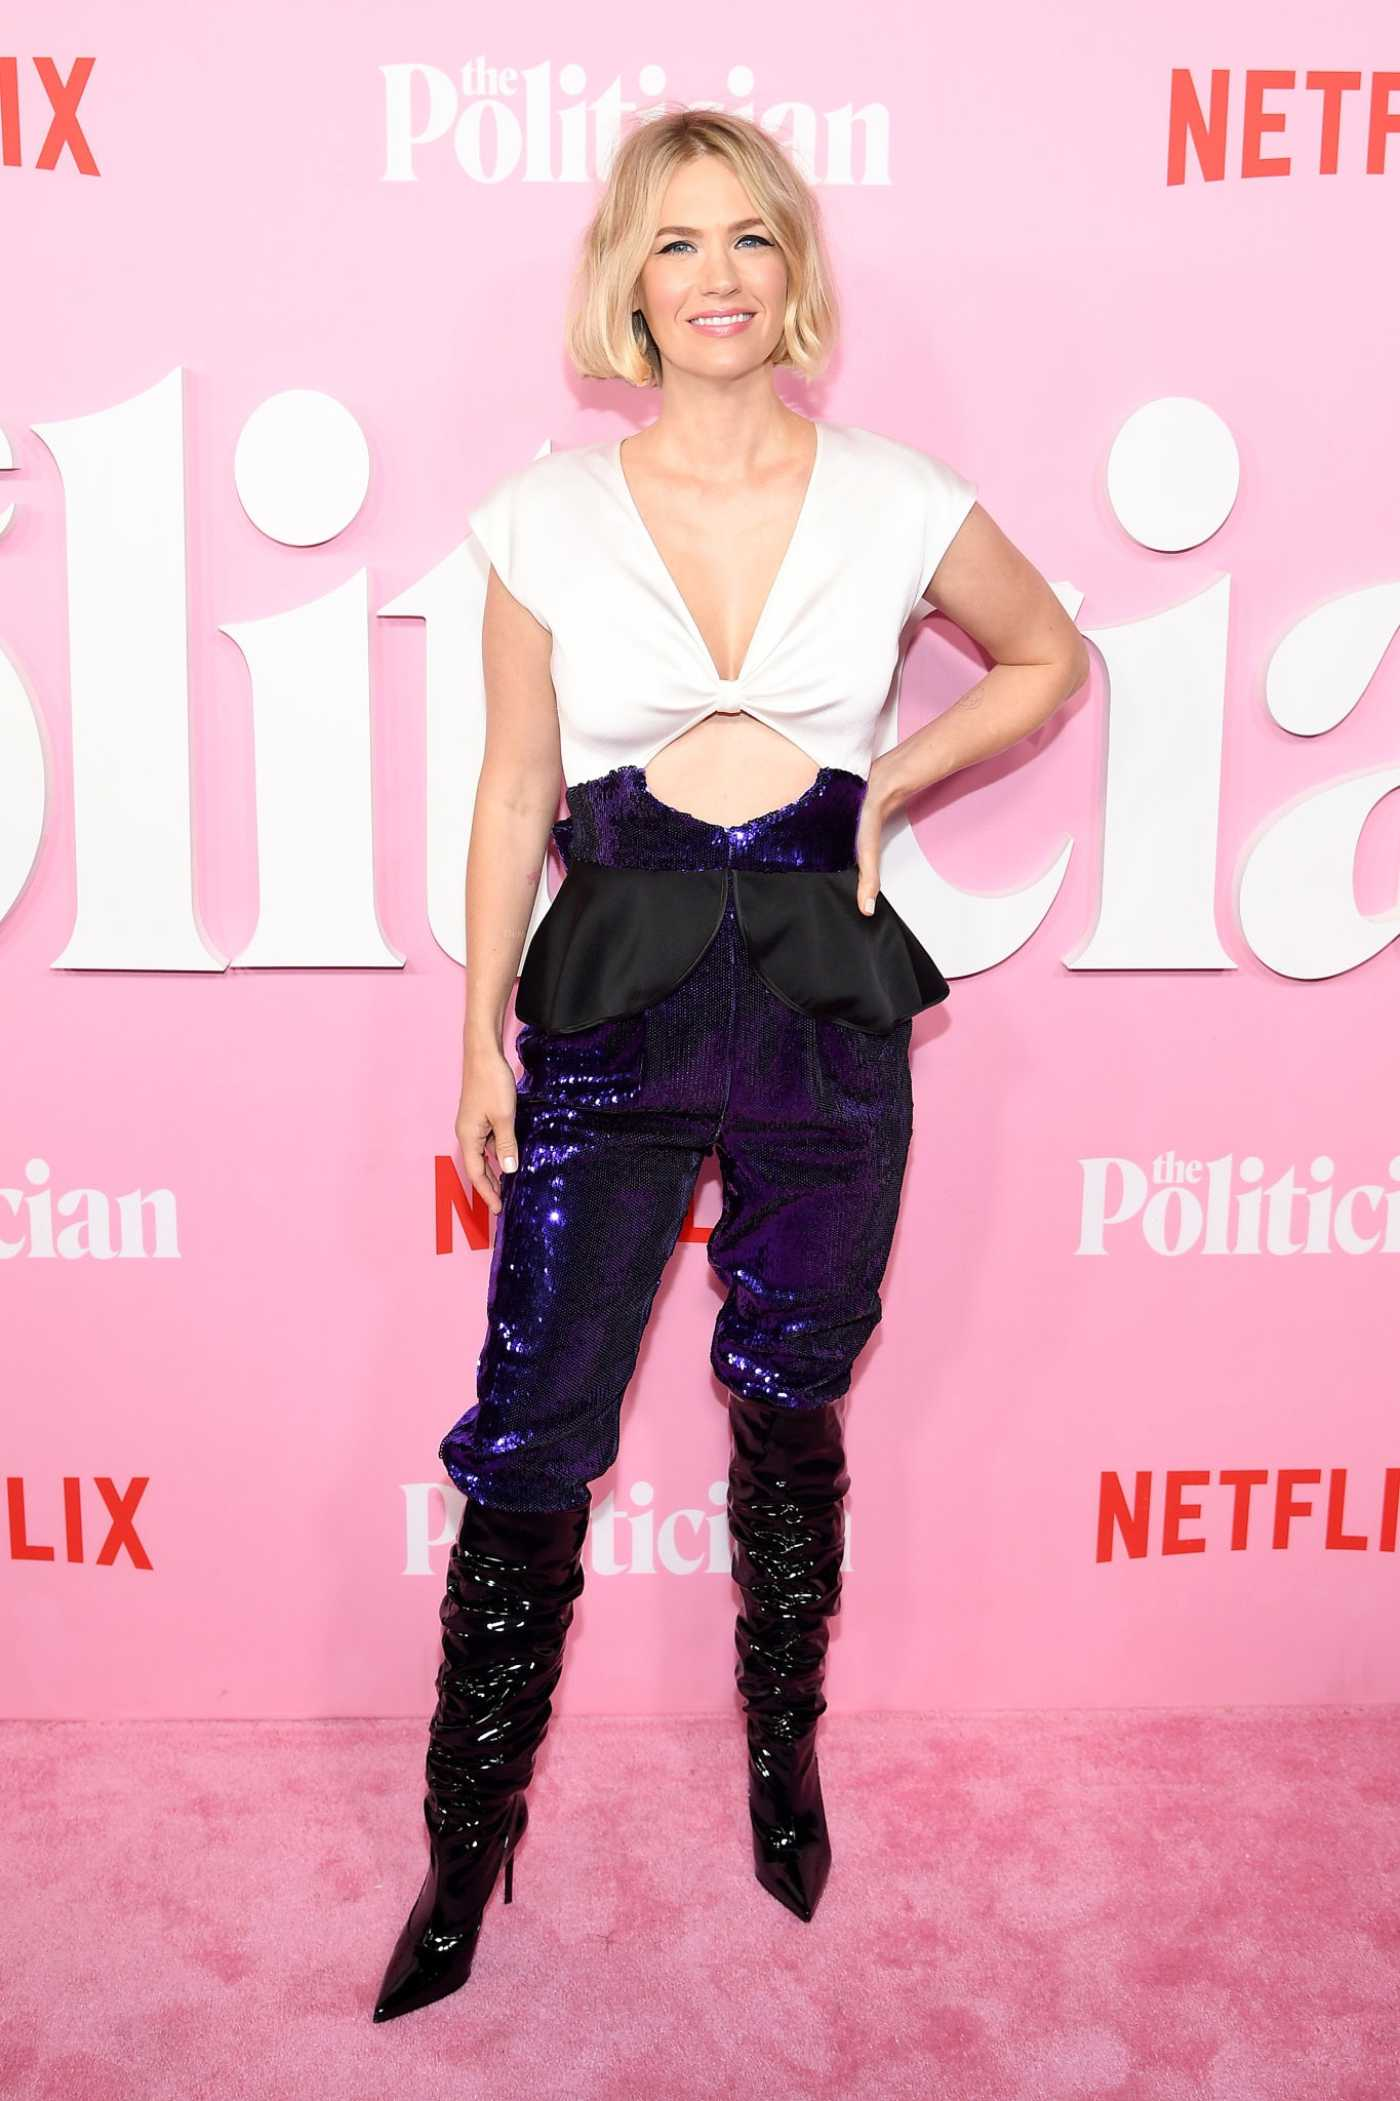 January Jones Attends The Politician Premiere in New York 09/26/2019